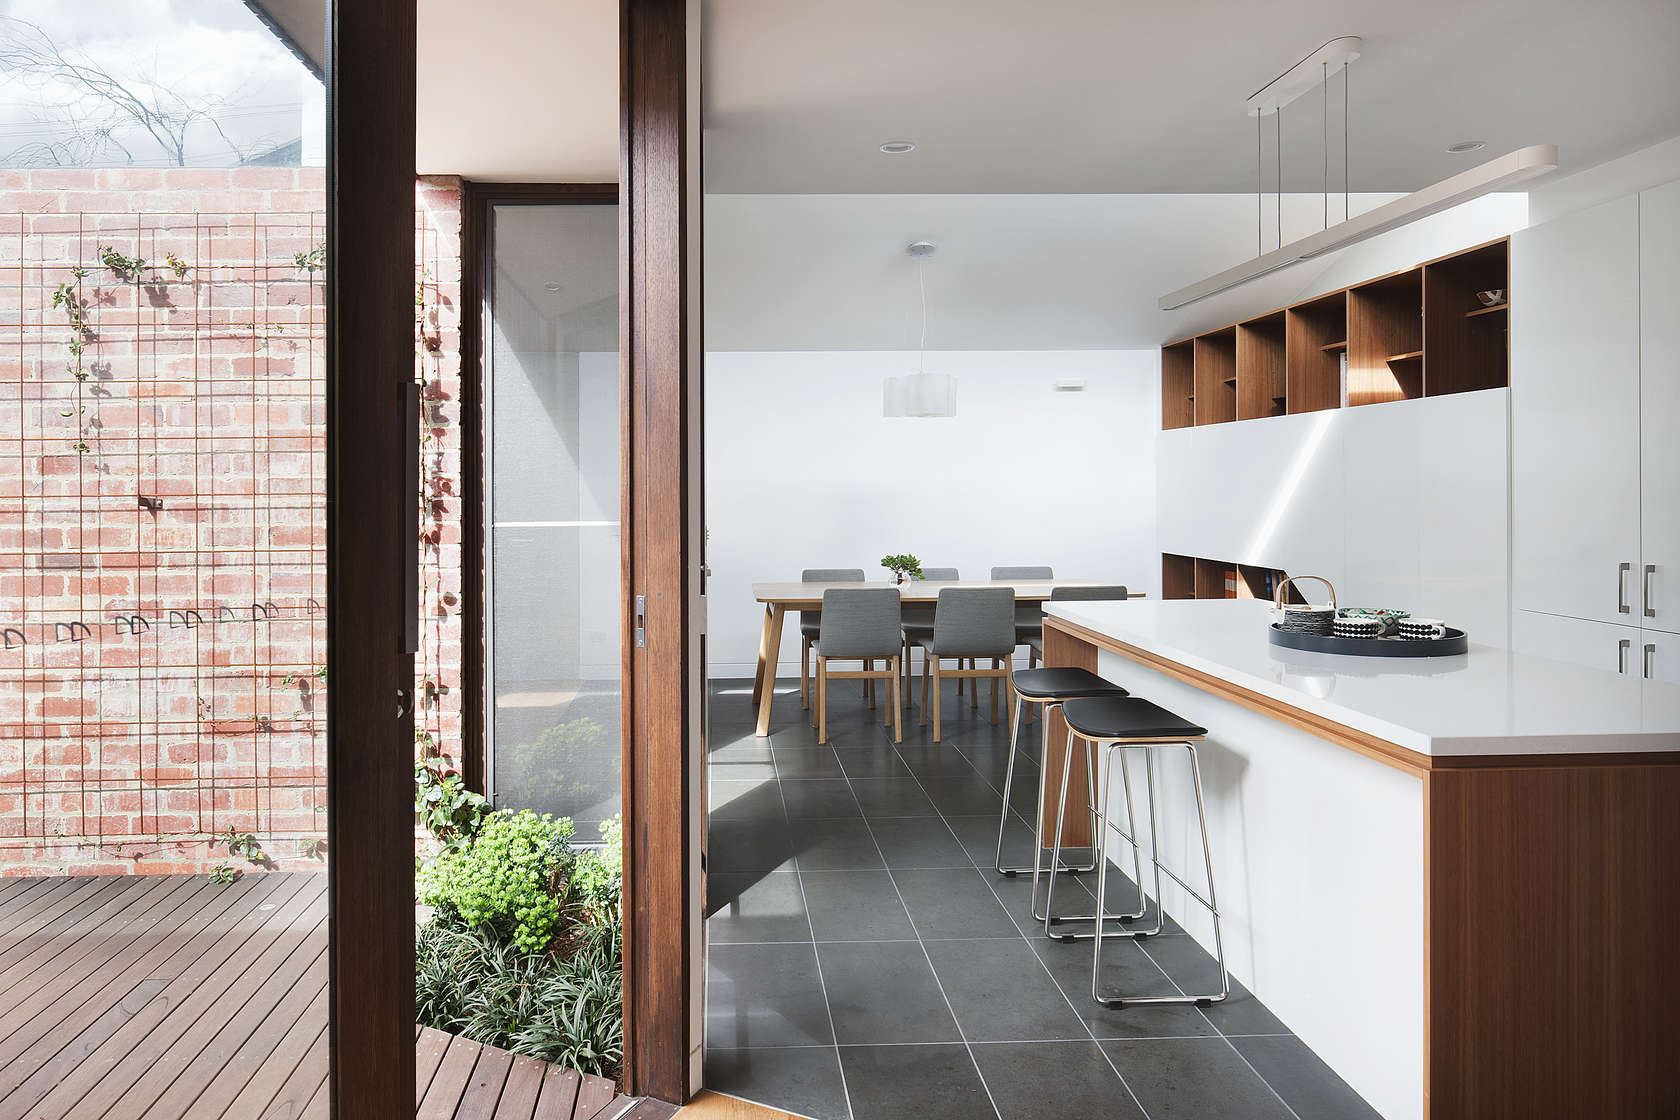 Inner City Downsize House Proves When it Comes to Space Less is More